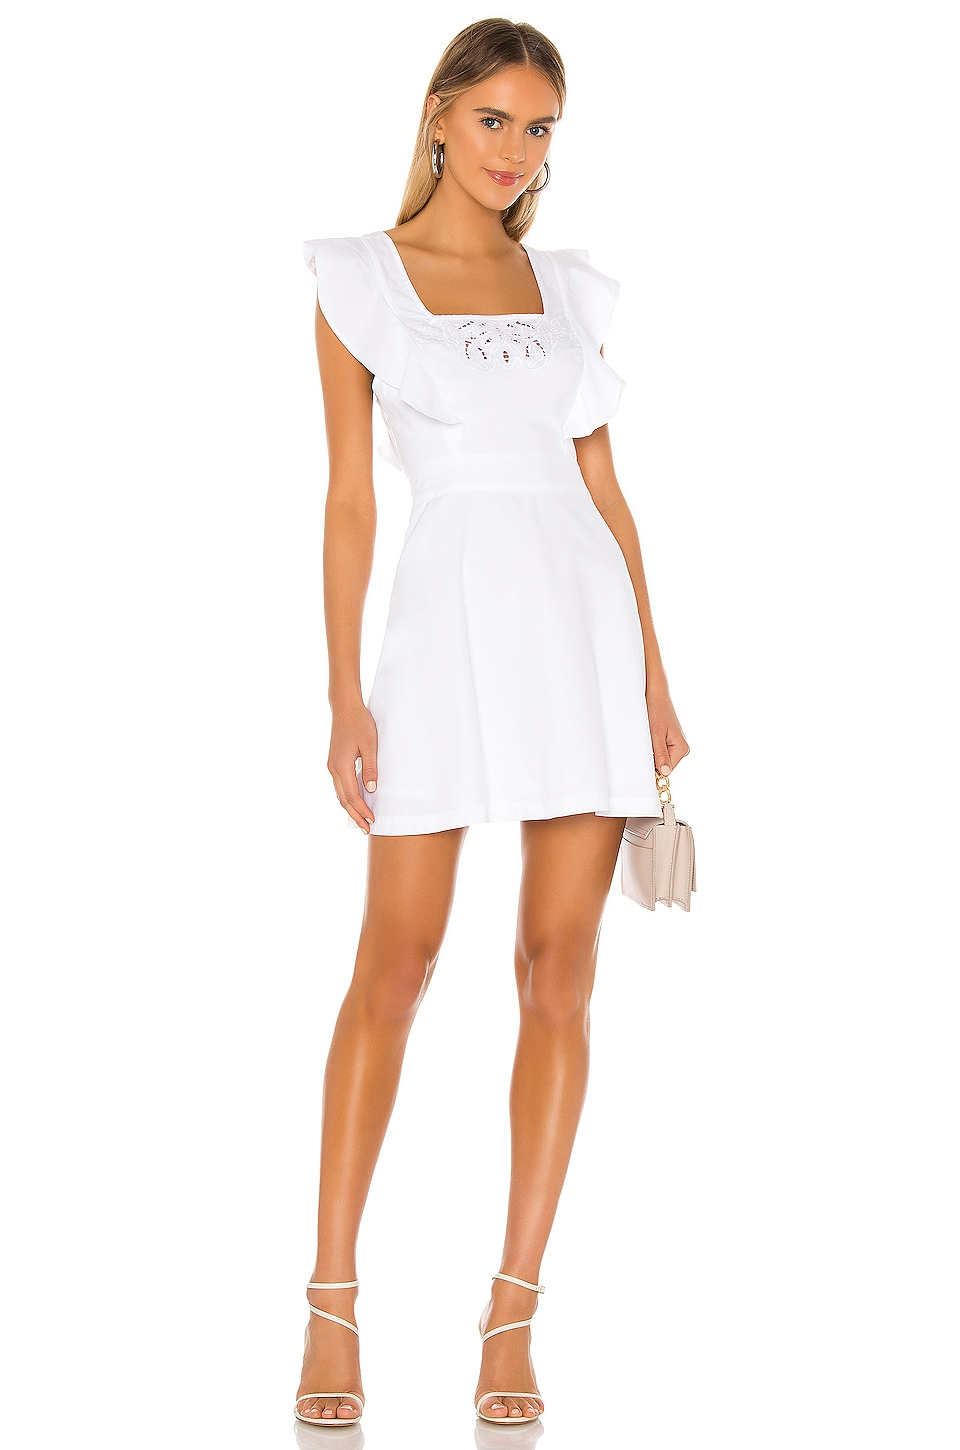 Tie Back Dress             BCBGeneration                                                                                                       CA$ 162.65 15